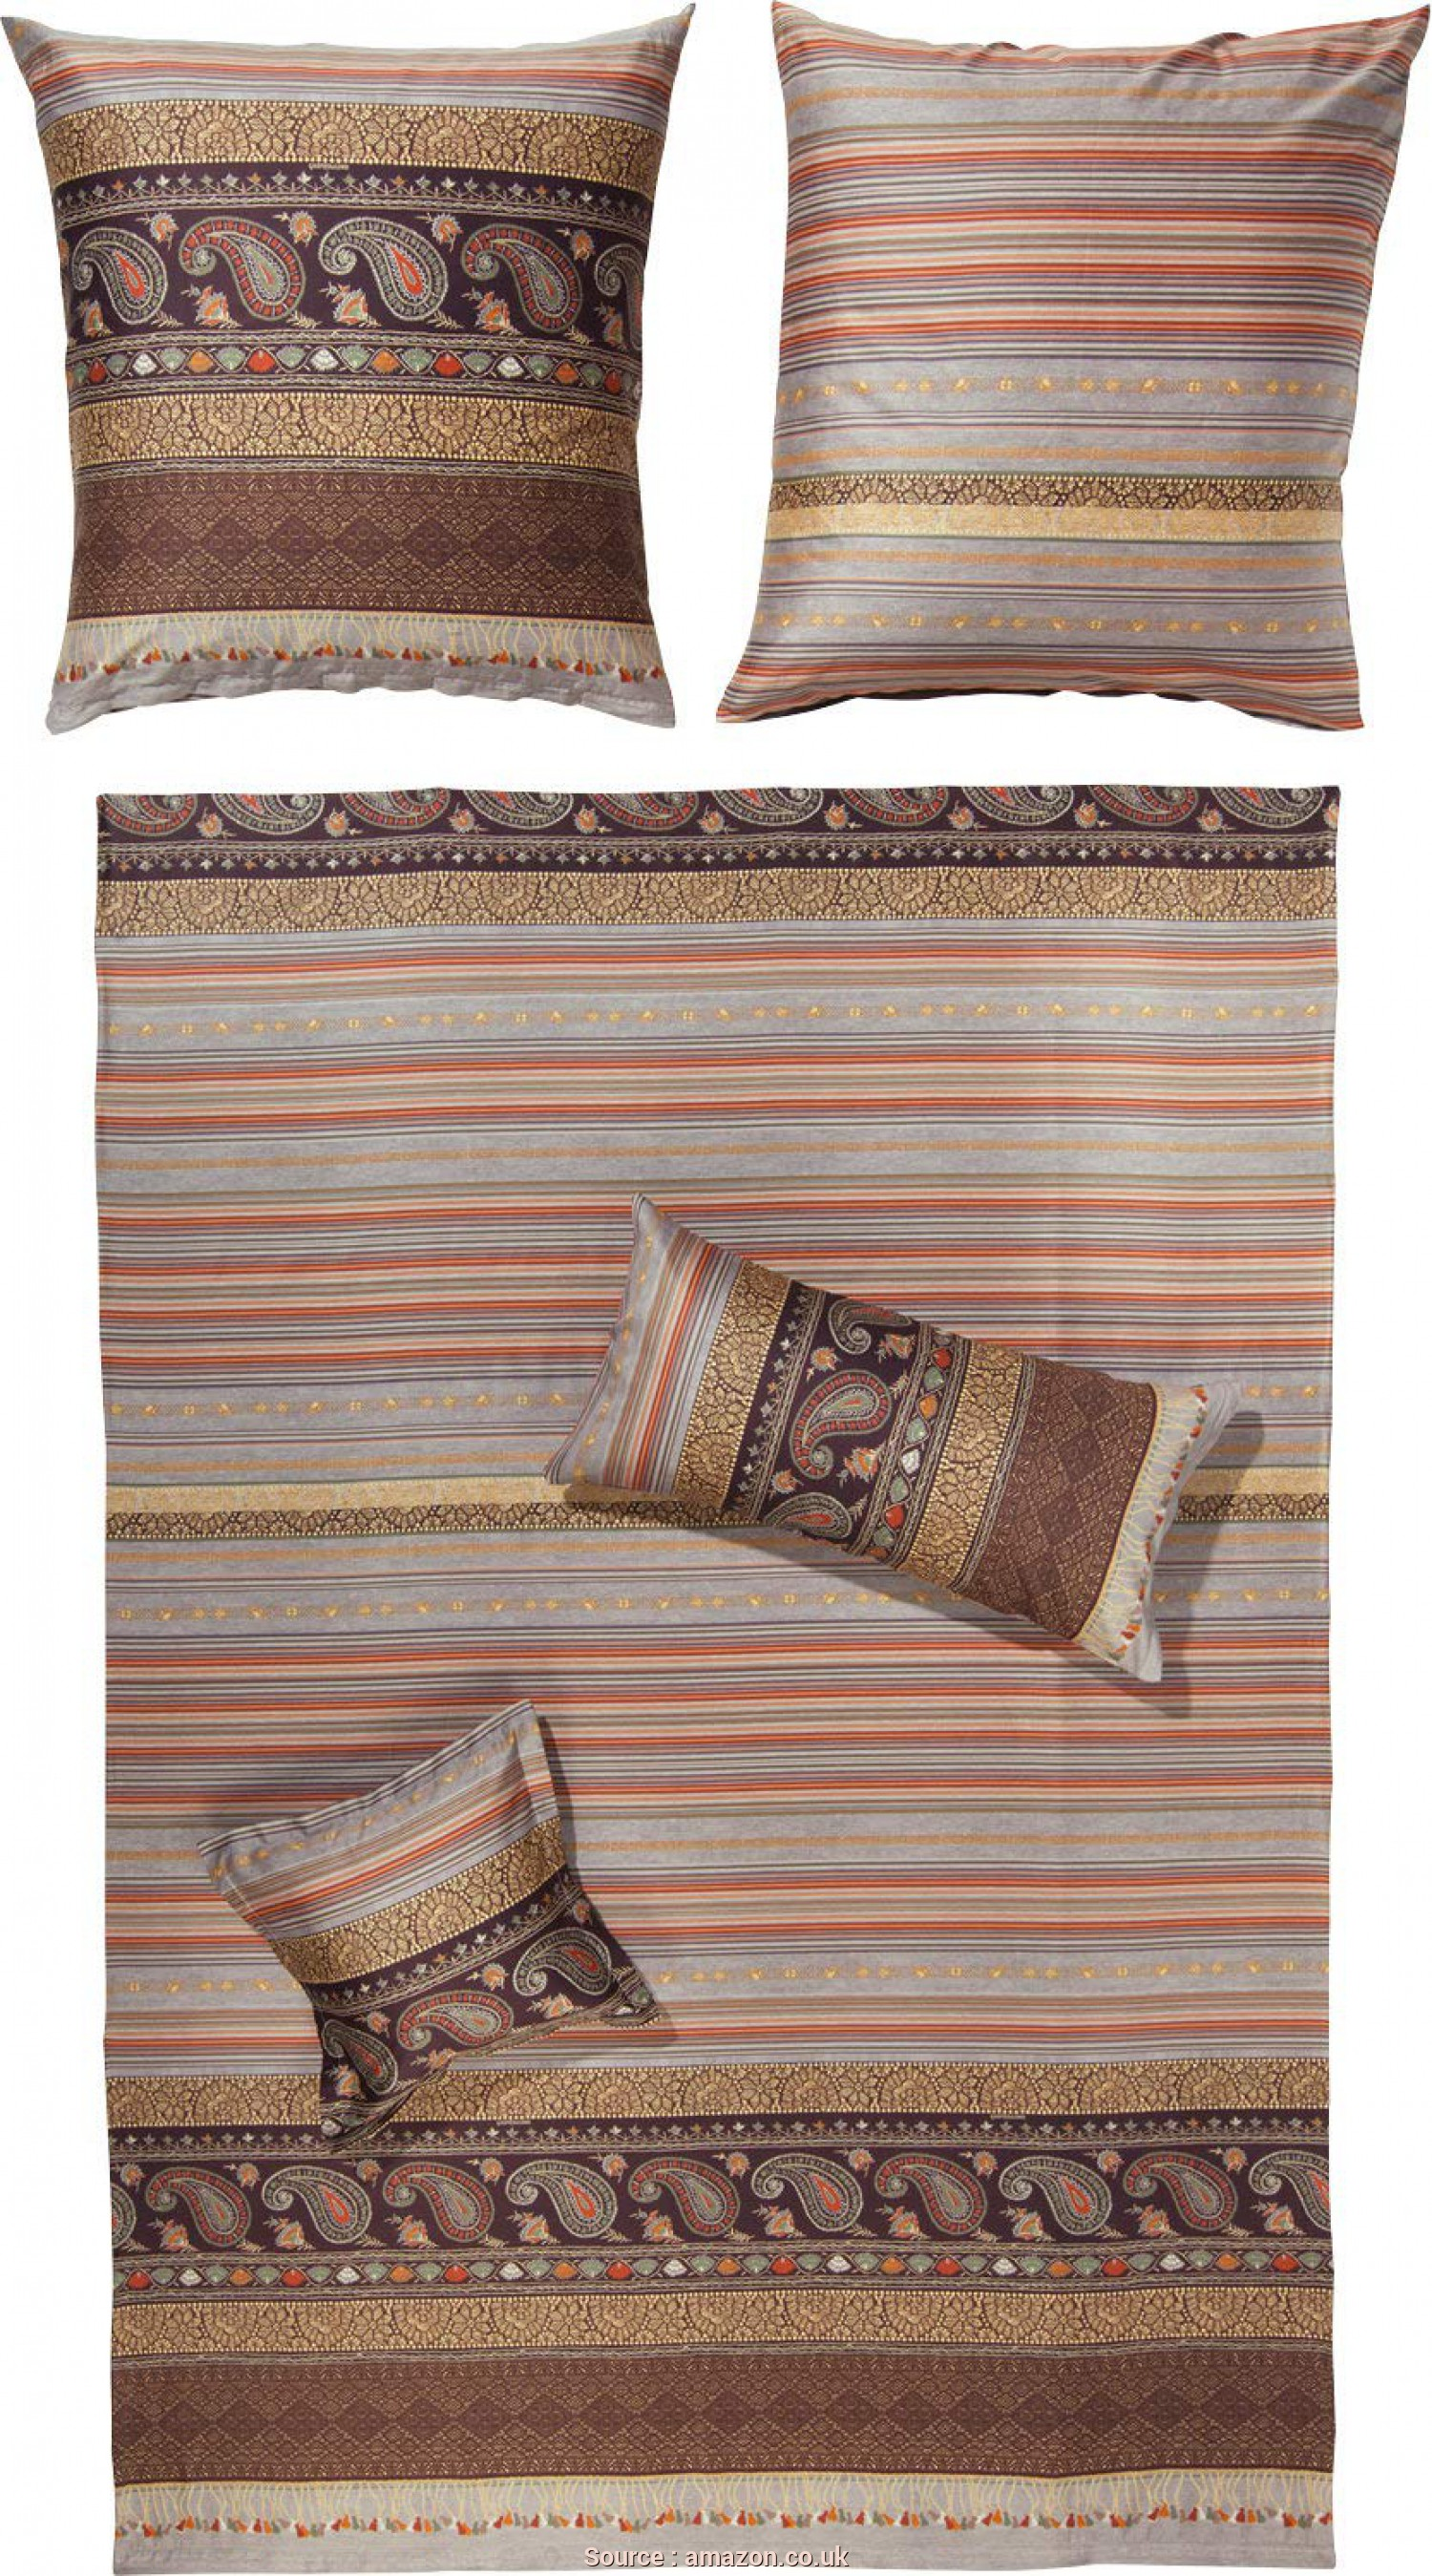 Copridivano Bassetti Amazon, Fantasia Bassetti Duvet Cover, Cervino V6 Satin Brown Size 80X80 Cm (2X) / 200X200, Bassetti: Amazon.Co.Uk: Kitchen & Home